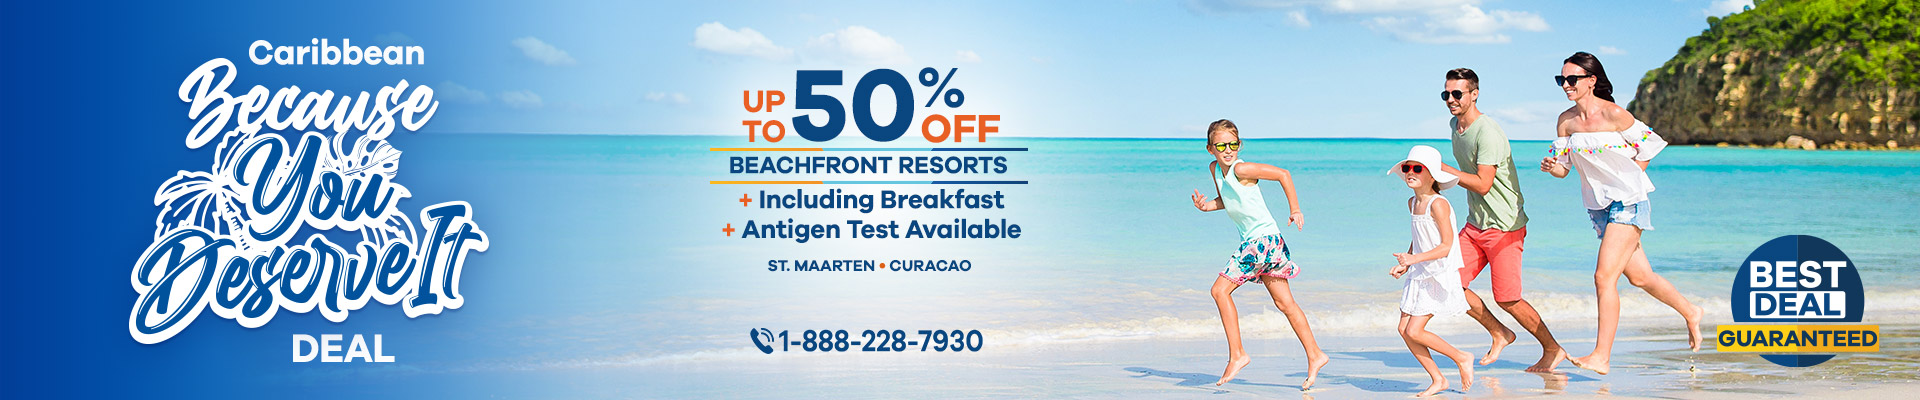 Beach vacations deals in St Maarten & Curaco